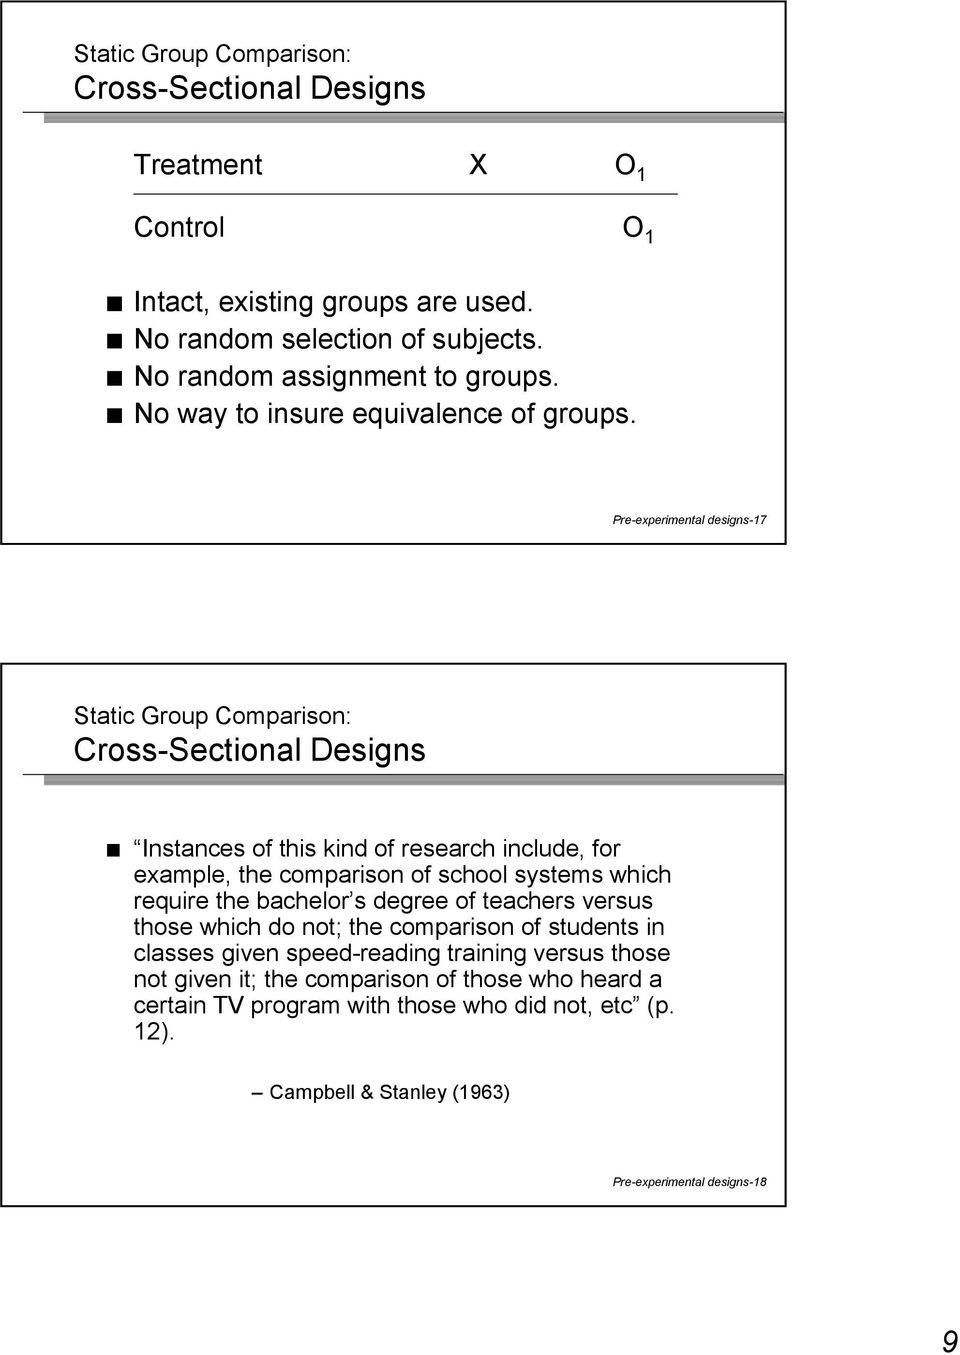 Pre-experimental designs-17 Static Group Comparison: Cross-Sectional Designs Instances of this kind of research include, for example, the comparison of school systems which